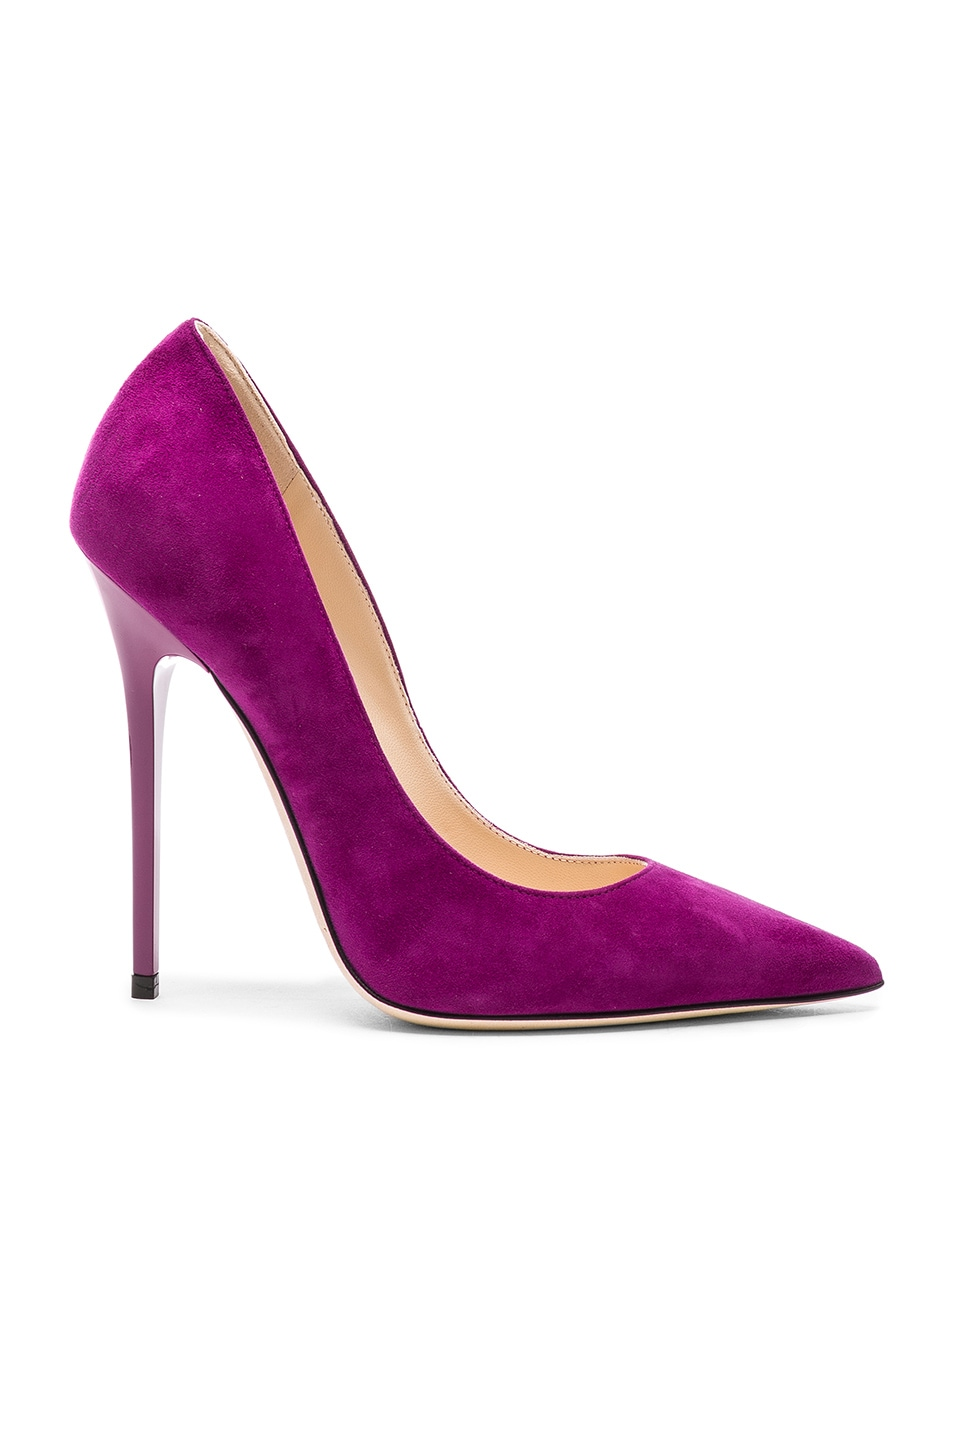 Image 1 of Jimmy Choo Suede Anouk Heels in Madeline